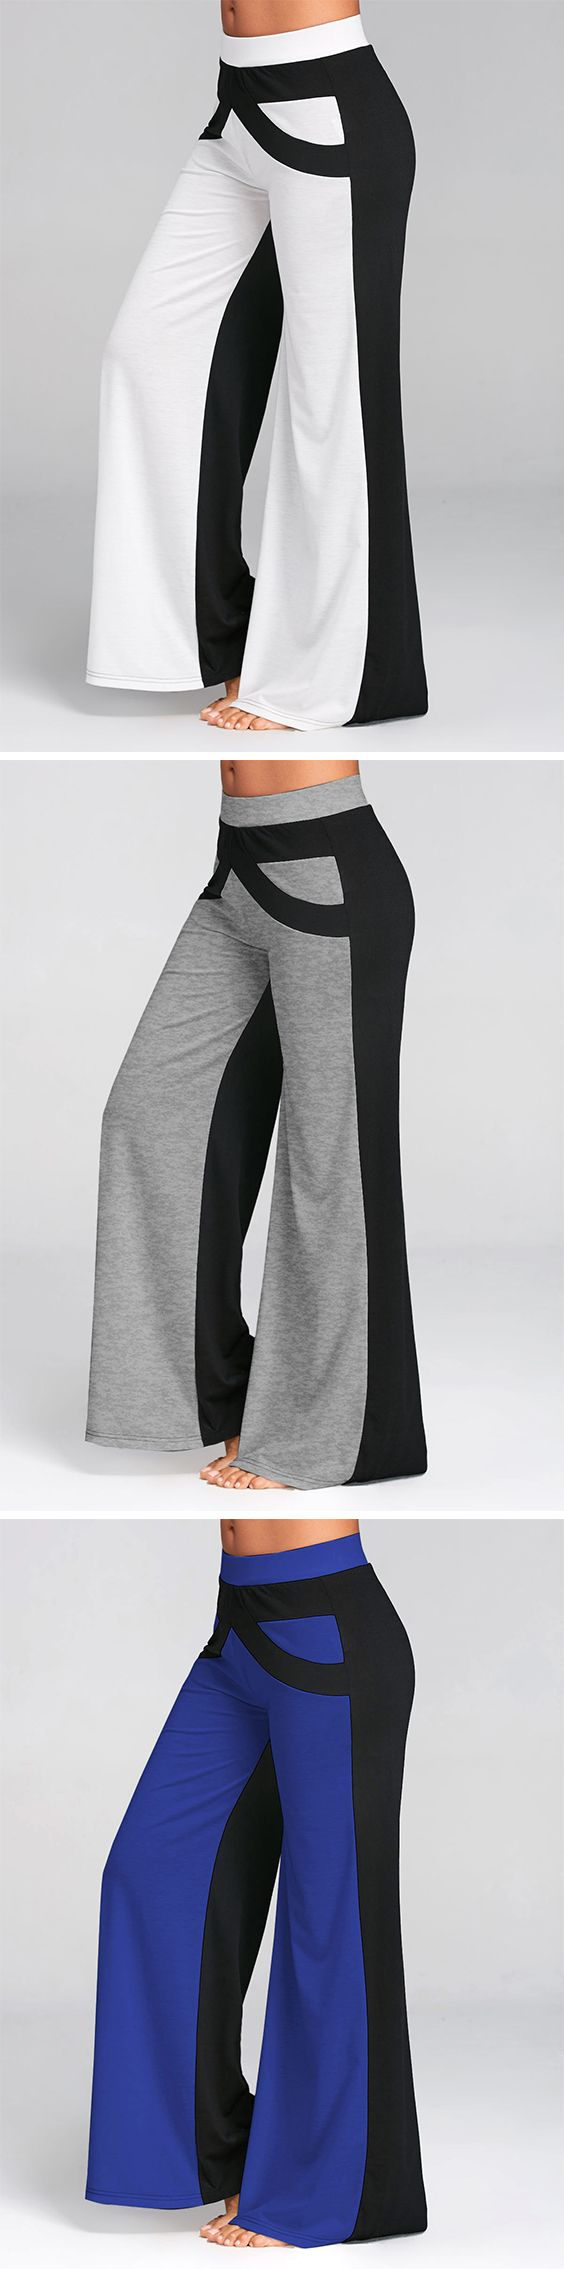 Casual wide leg pants features white and black panel design  - Loose silhouette - Mid waist#pants#womenoutfit